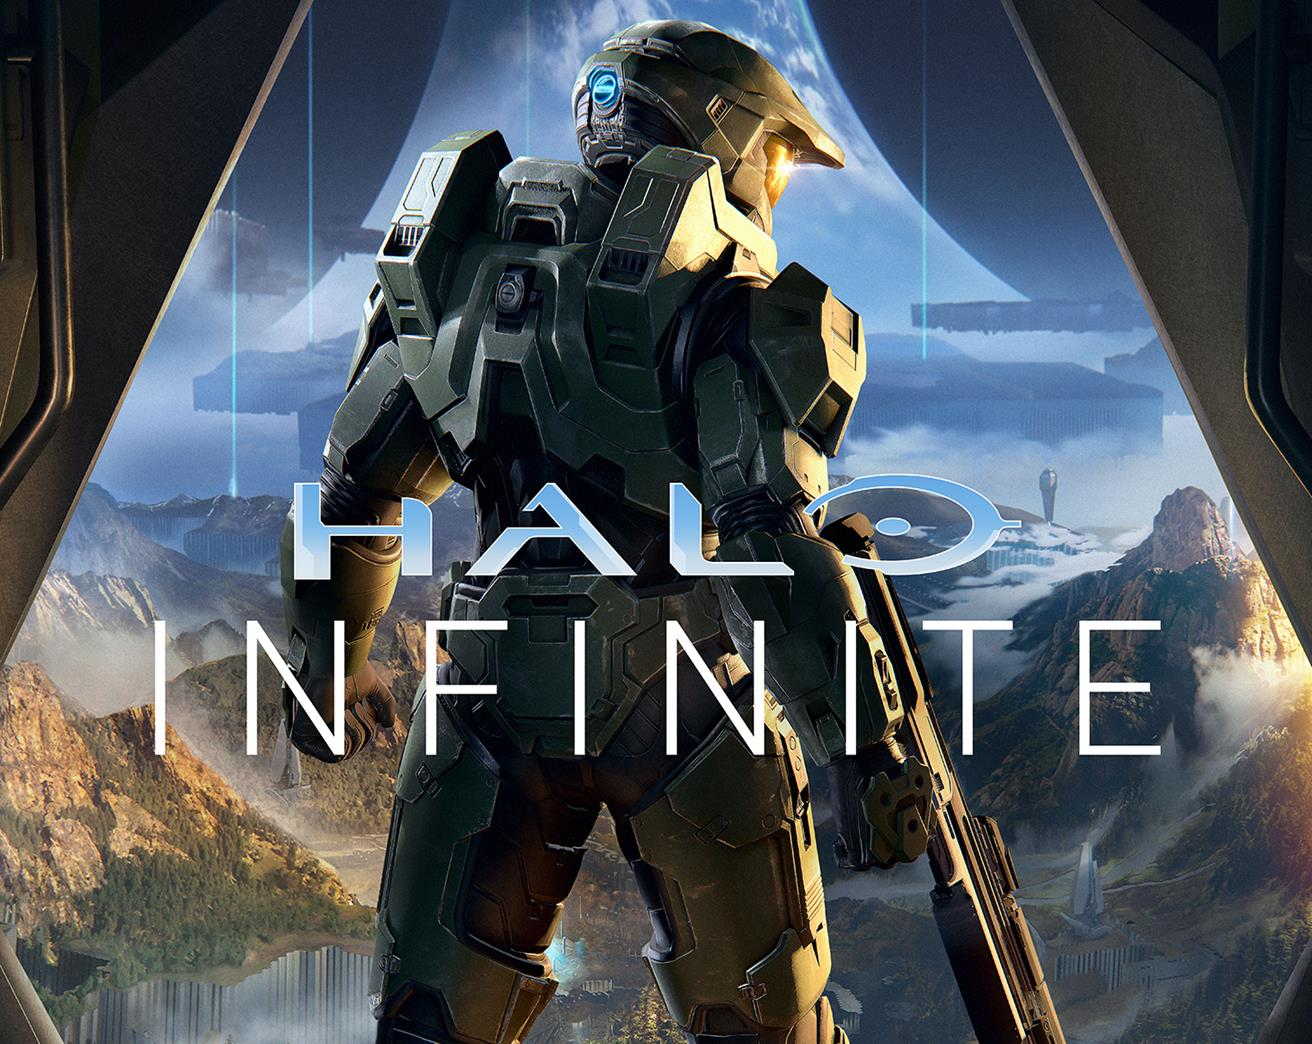 Halo Infinite's next big moment is E3 2020, but beta tests ...